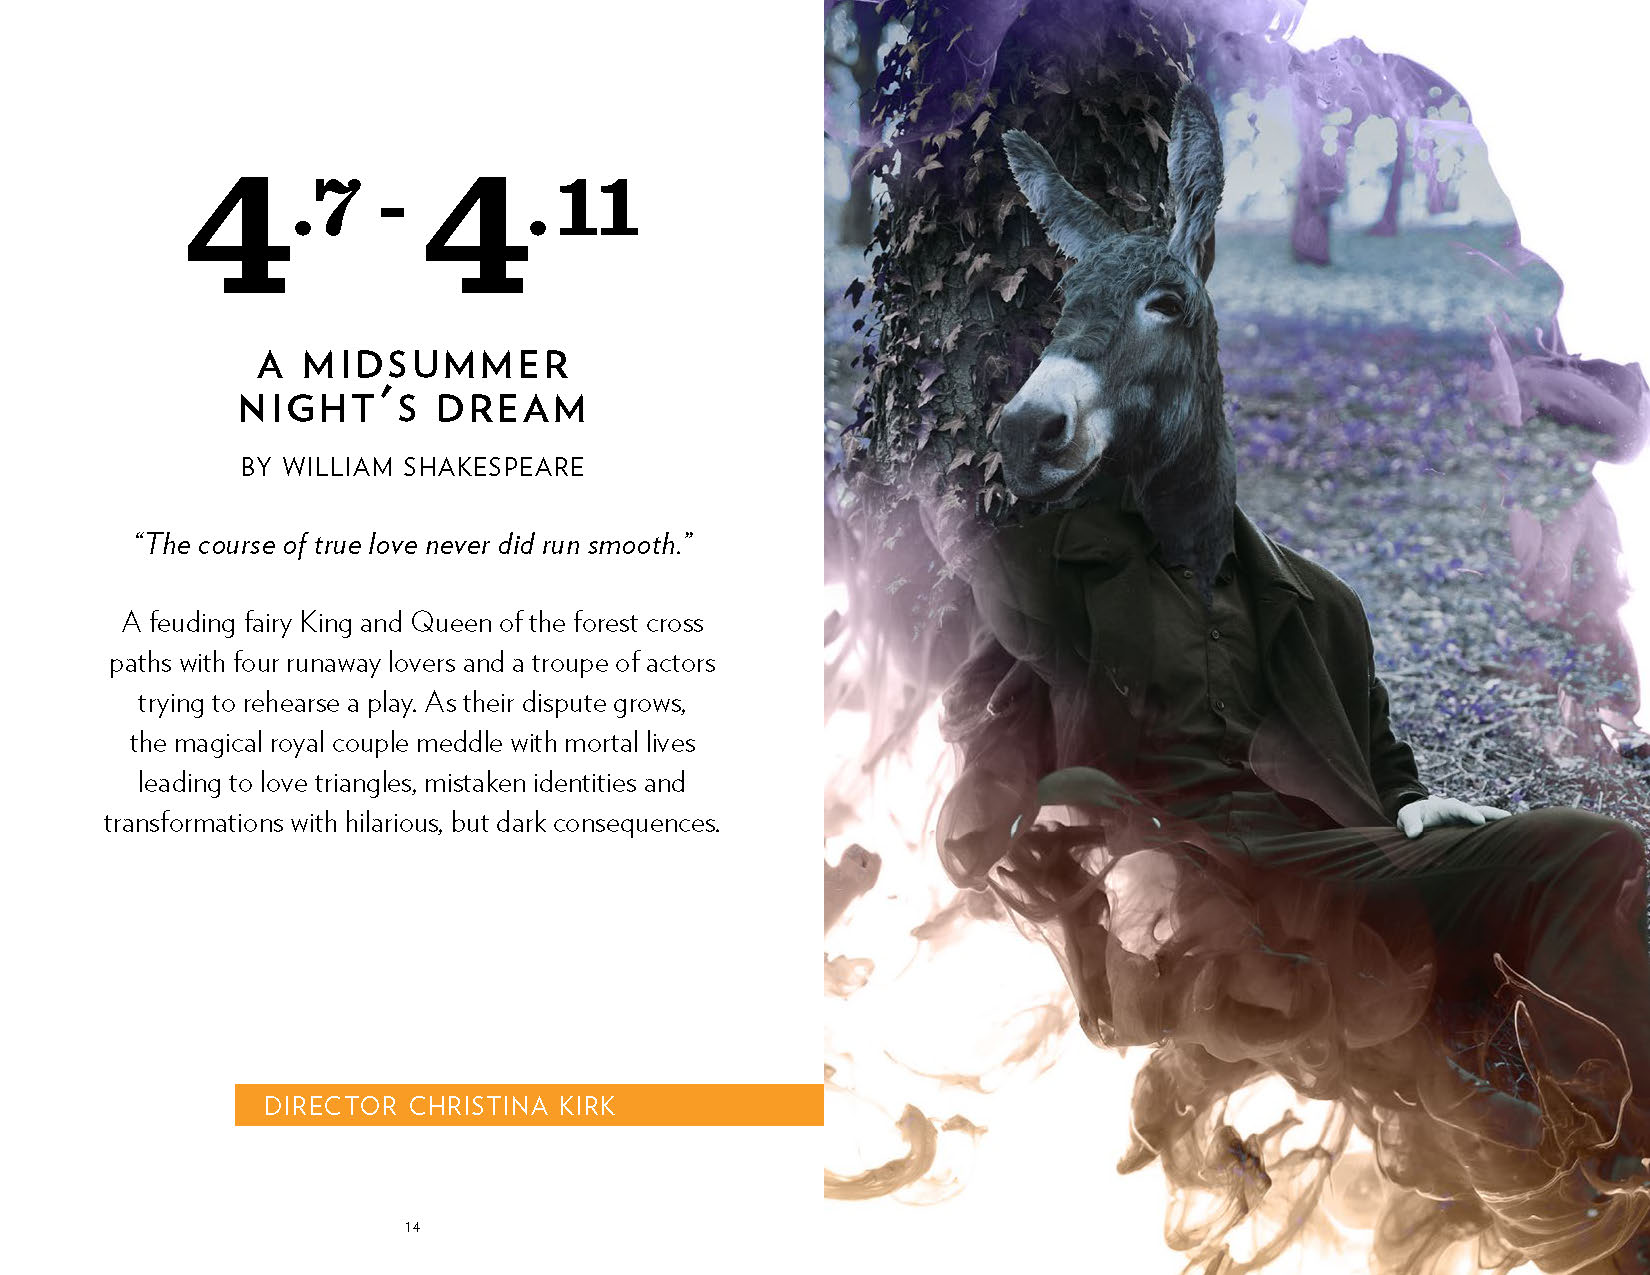 A page spread for a brochure. On the left are the dates '4/7–4/11' and the title of the play, 'A Midsummer Night's Dream'. On the right is a photo overlaid onto a smoky background of a man with a donkey's head wearing a suit and sitting at the base of a tree.